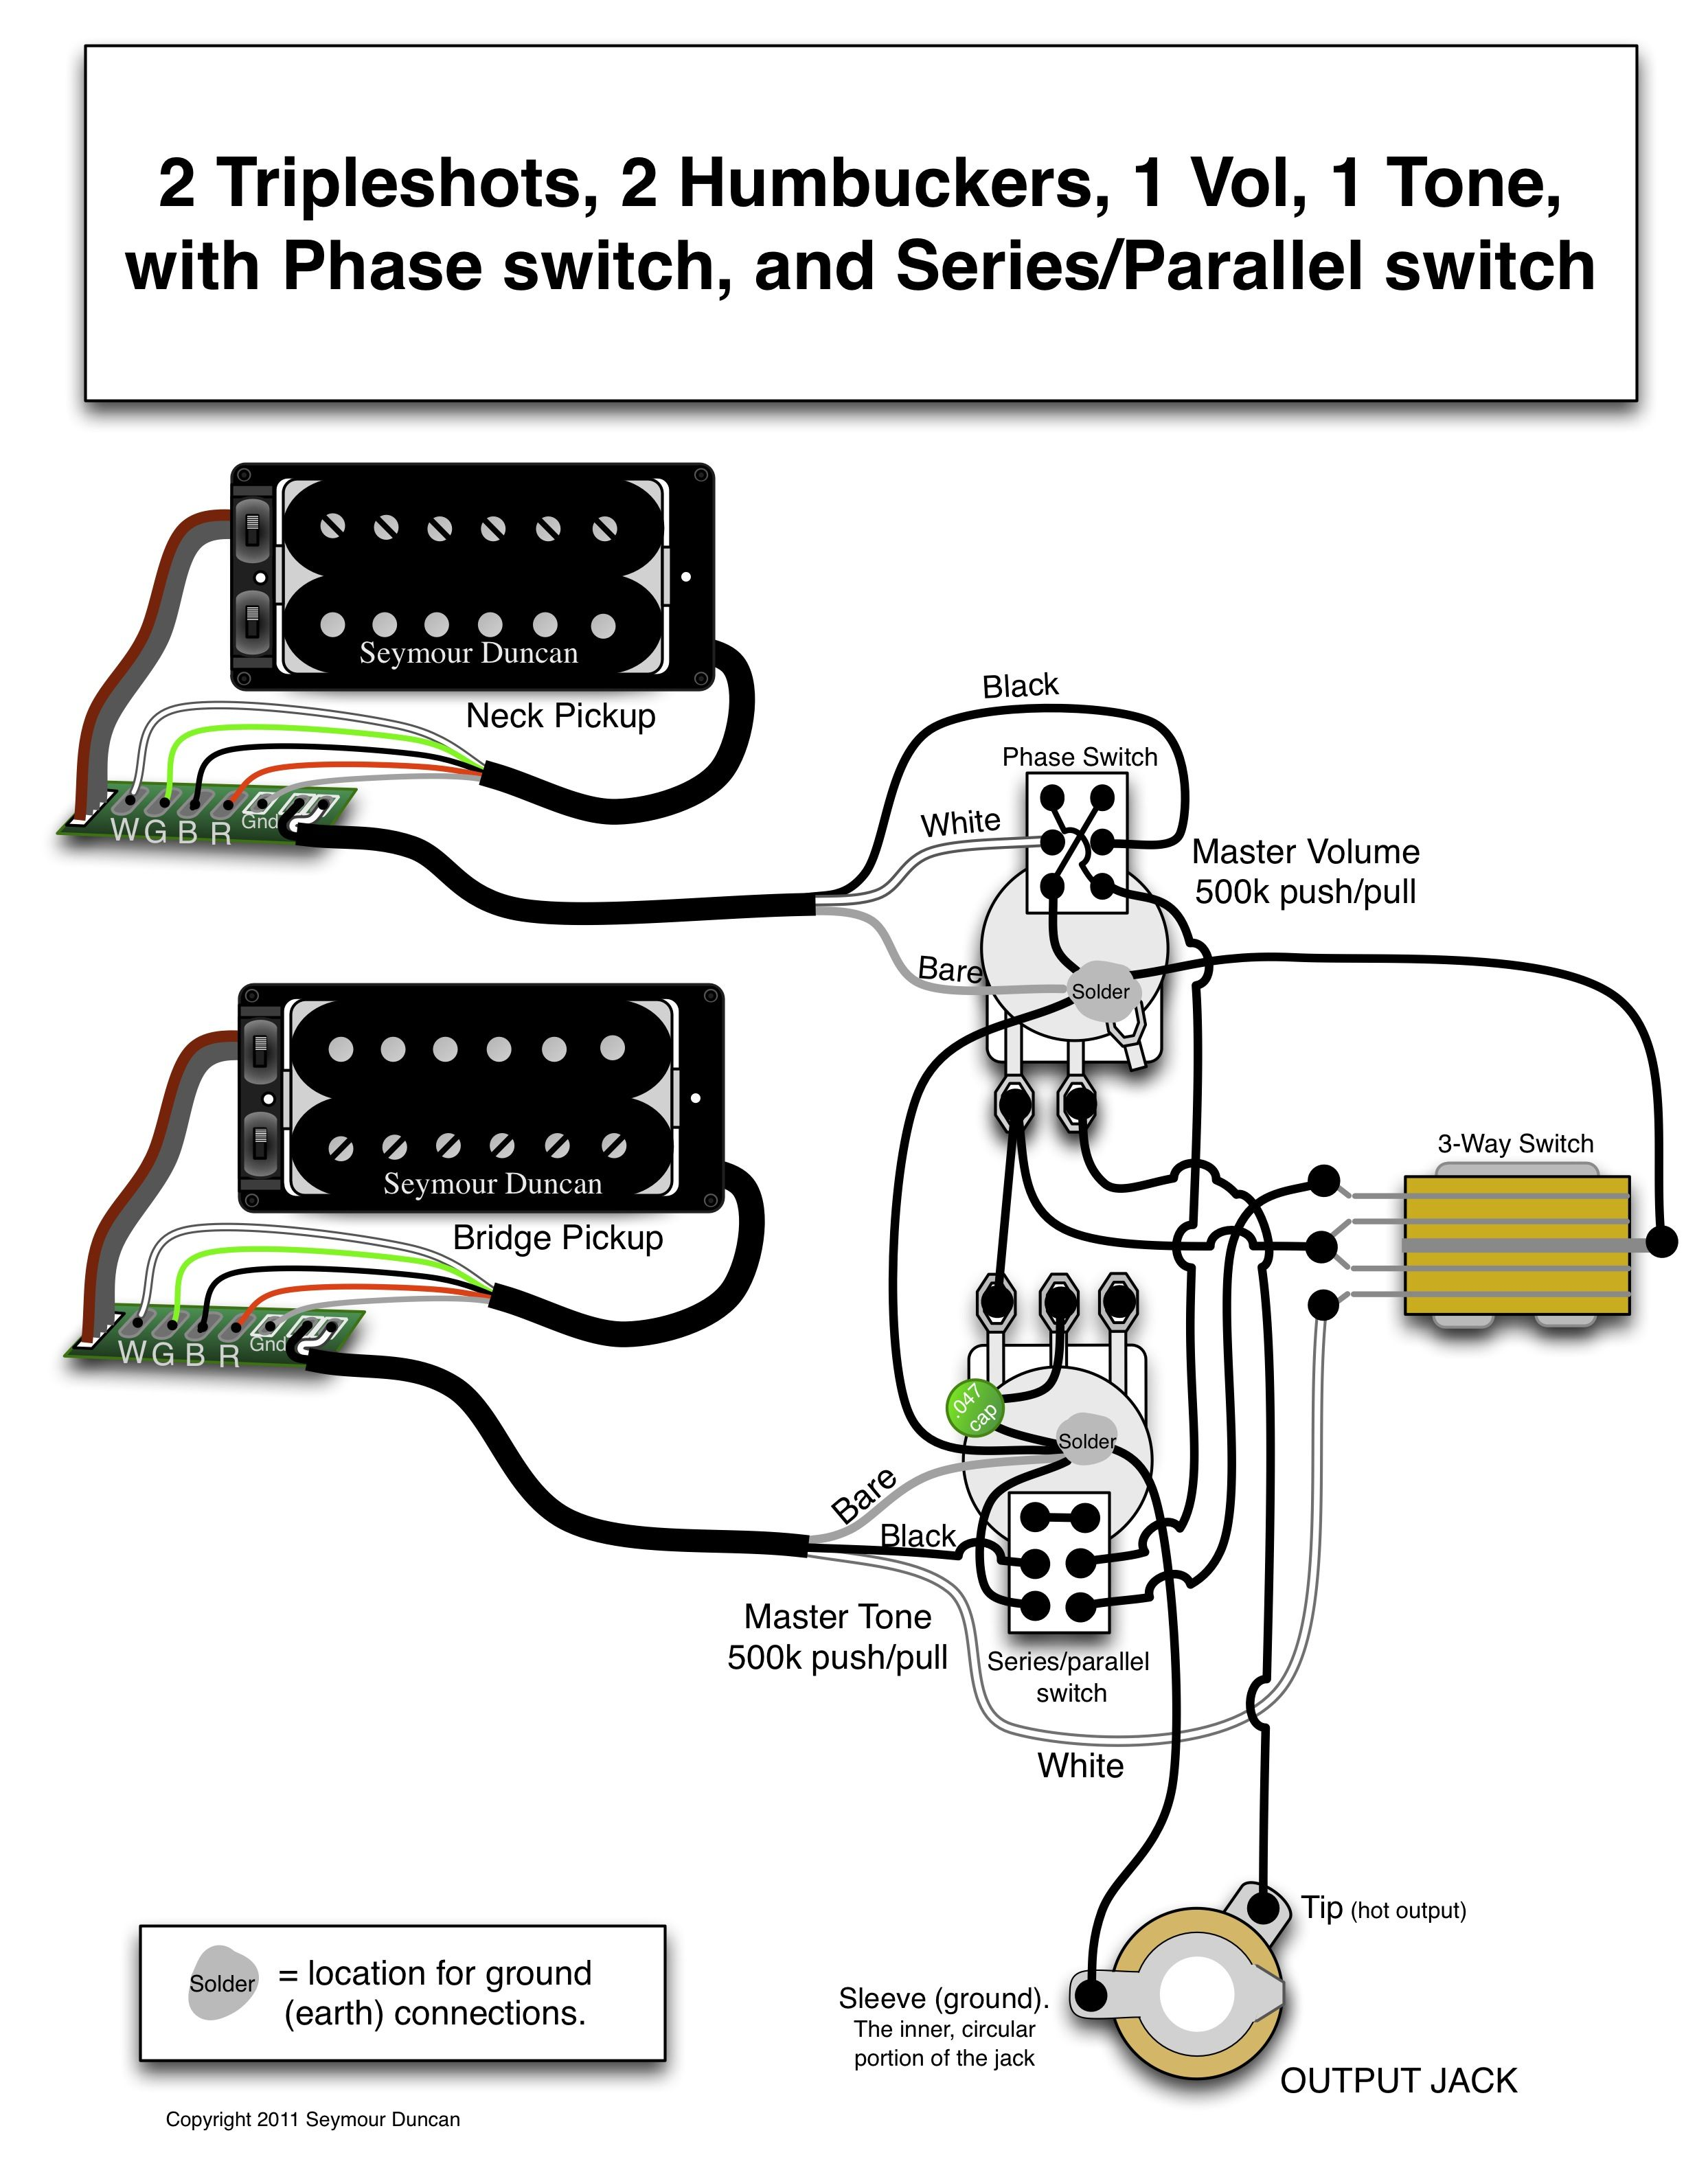 Seymour Duncan Wiring Diagram 2 Triple Shots Humbuckers 1 Vol. Seymour Duncan Wiring Diagram 2 Triple Shots Humbuckers 1 Vol With Phase Switch Tone Seriesparallel. Wiring. Phase Strat Wiring Diagram At Scoala.co